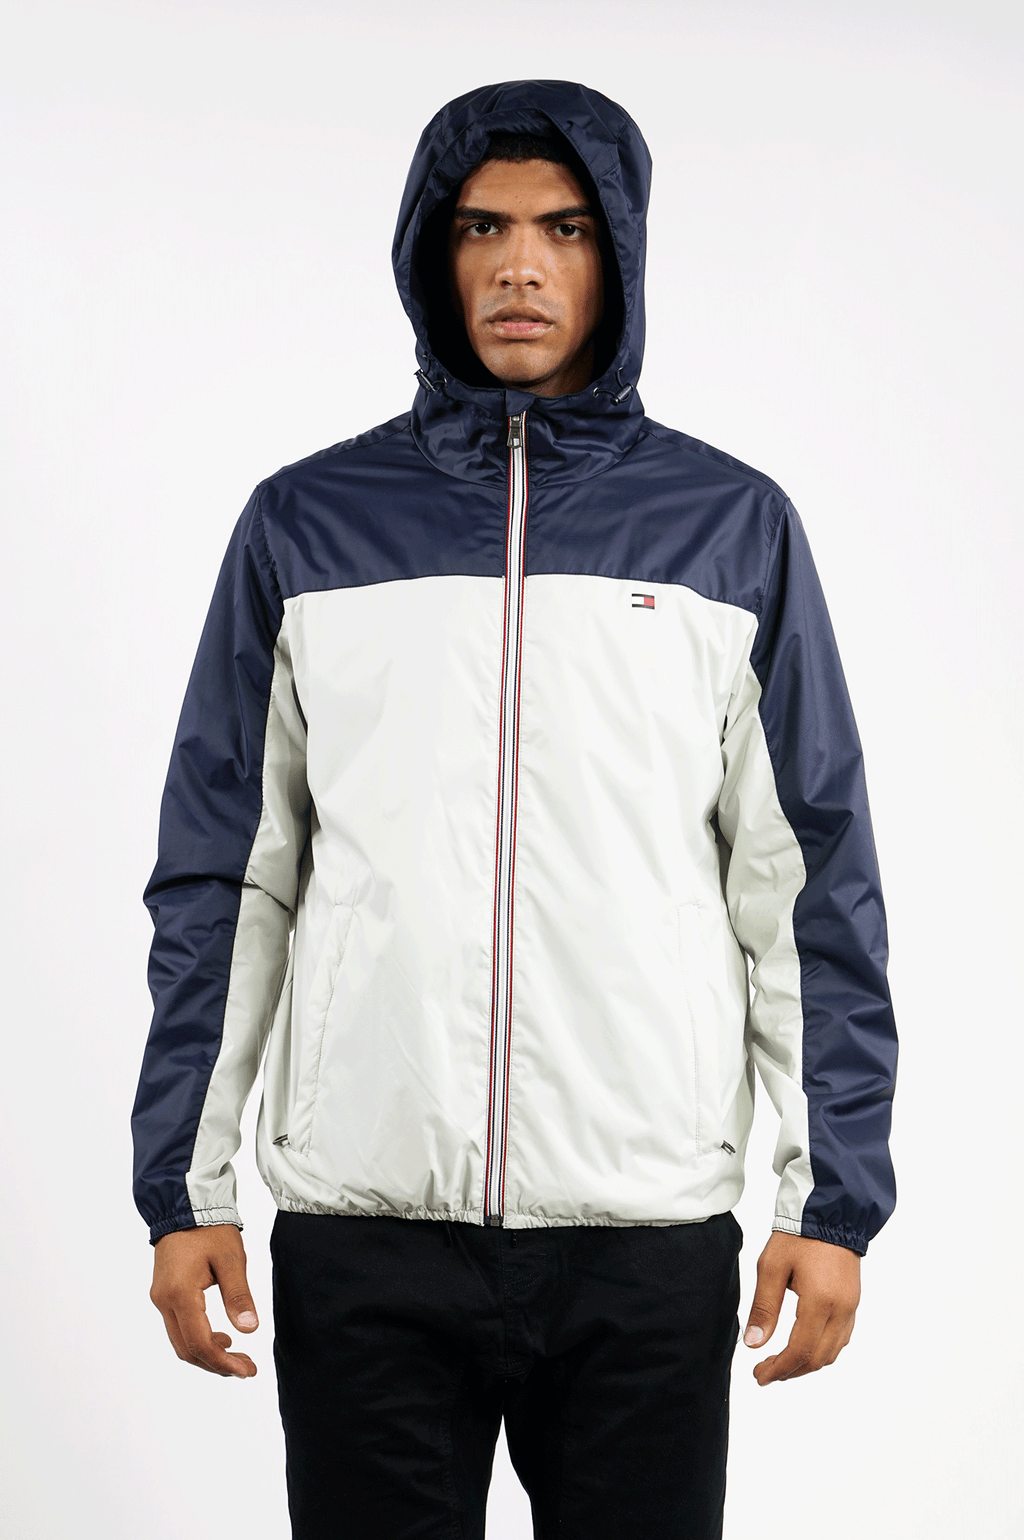 TOMMY HILFIGER OUTERWEAR MENS COLOR BLOCK JACKET